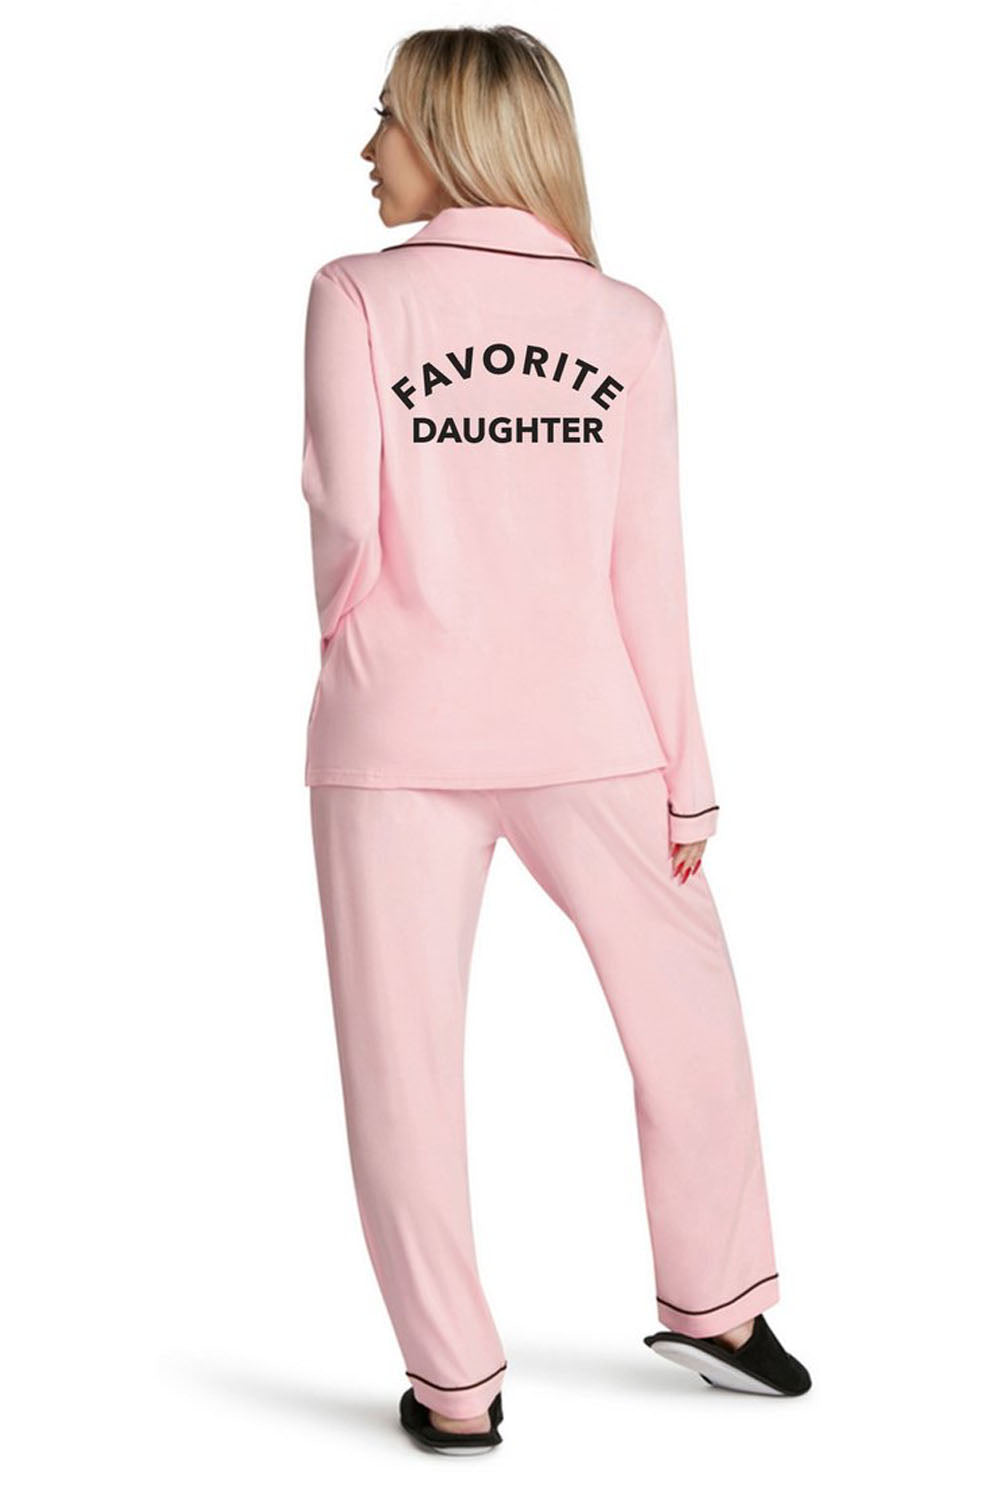 Lightweight Pajama Set- Favorite Daughter